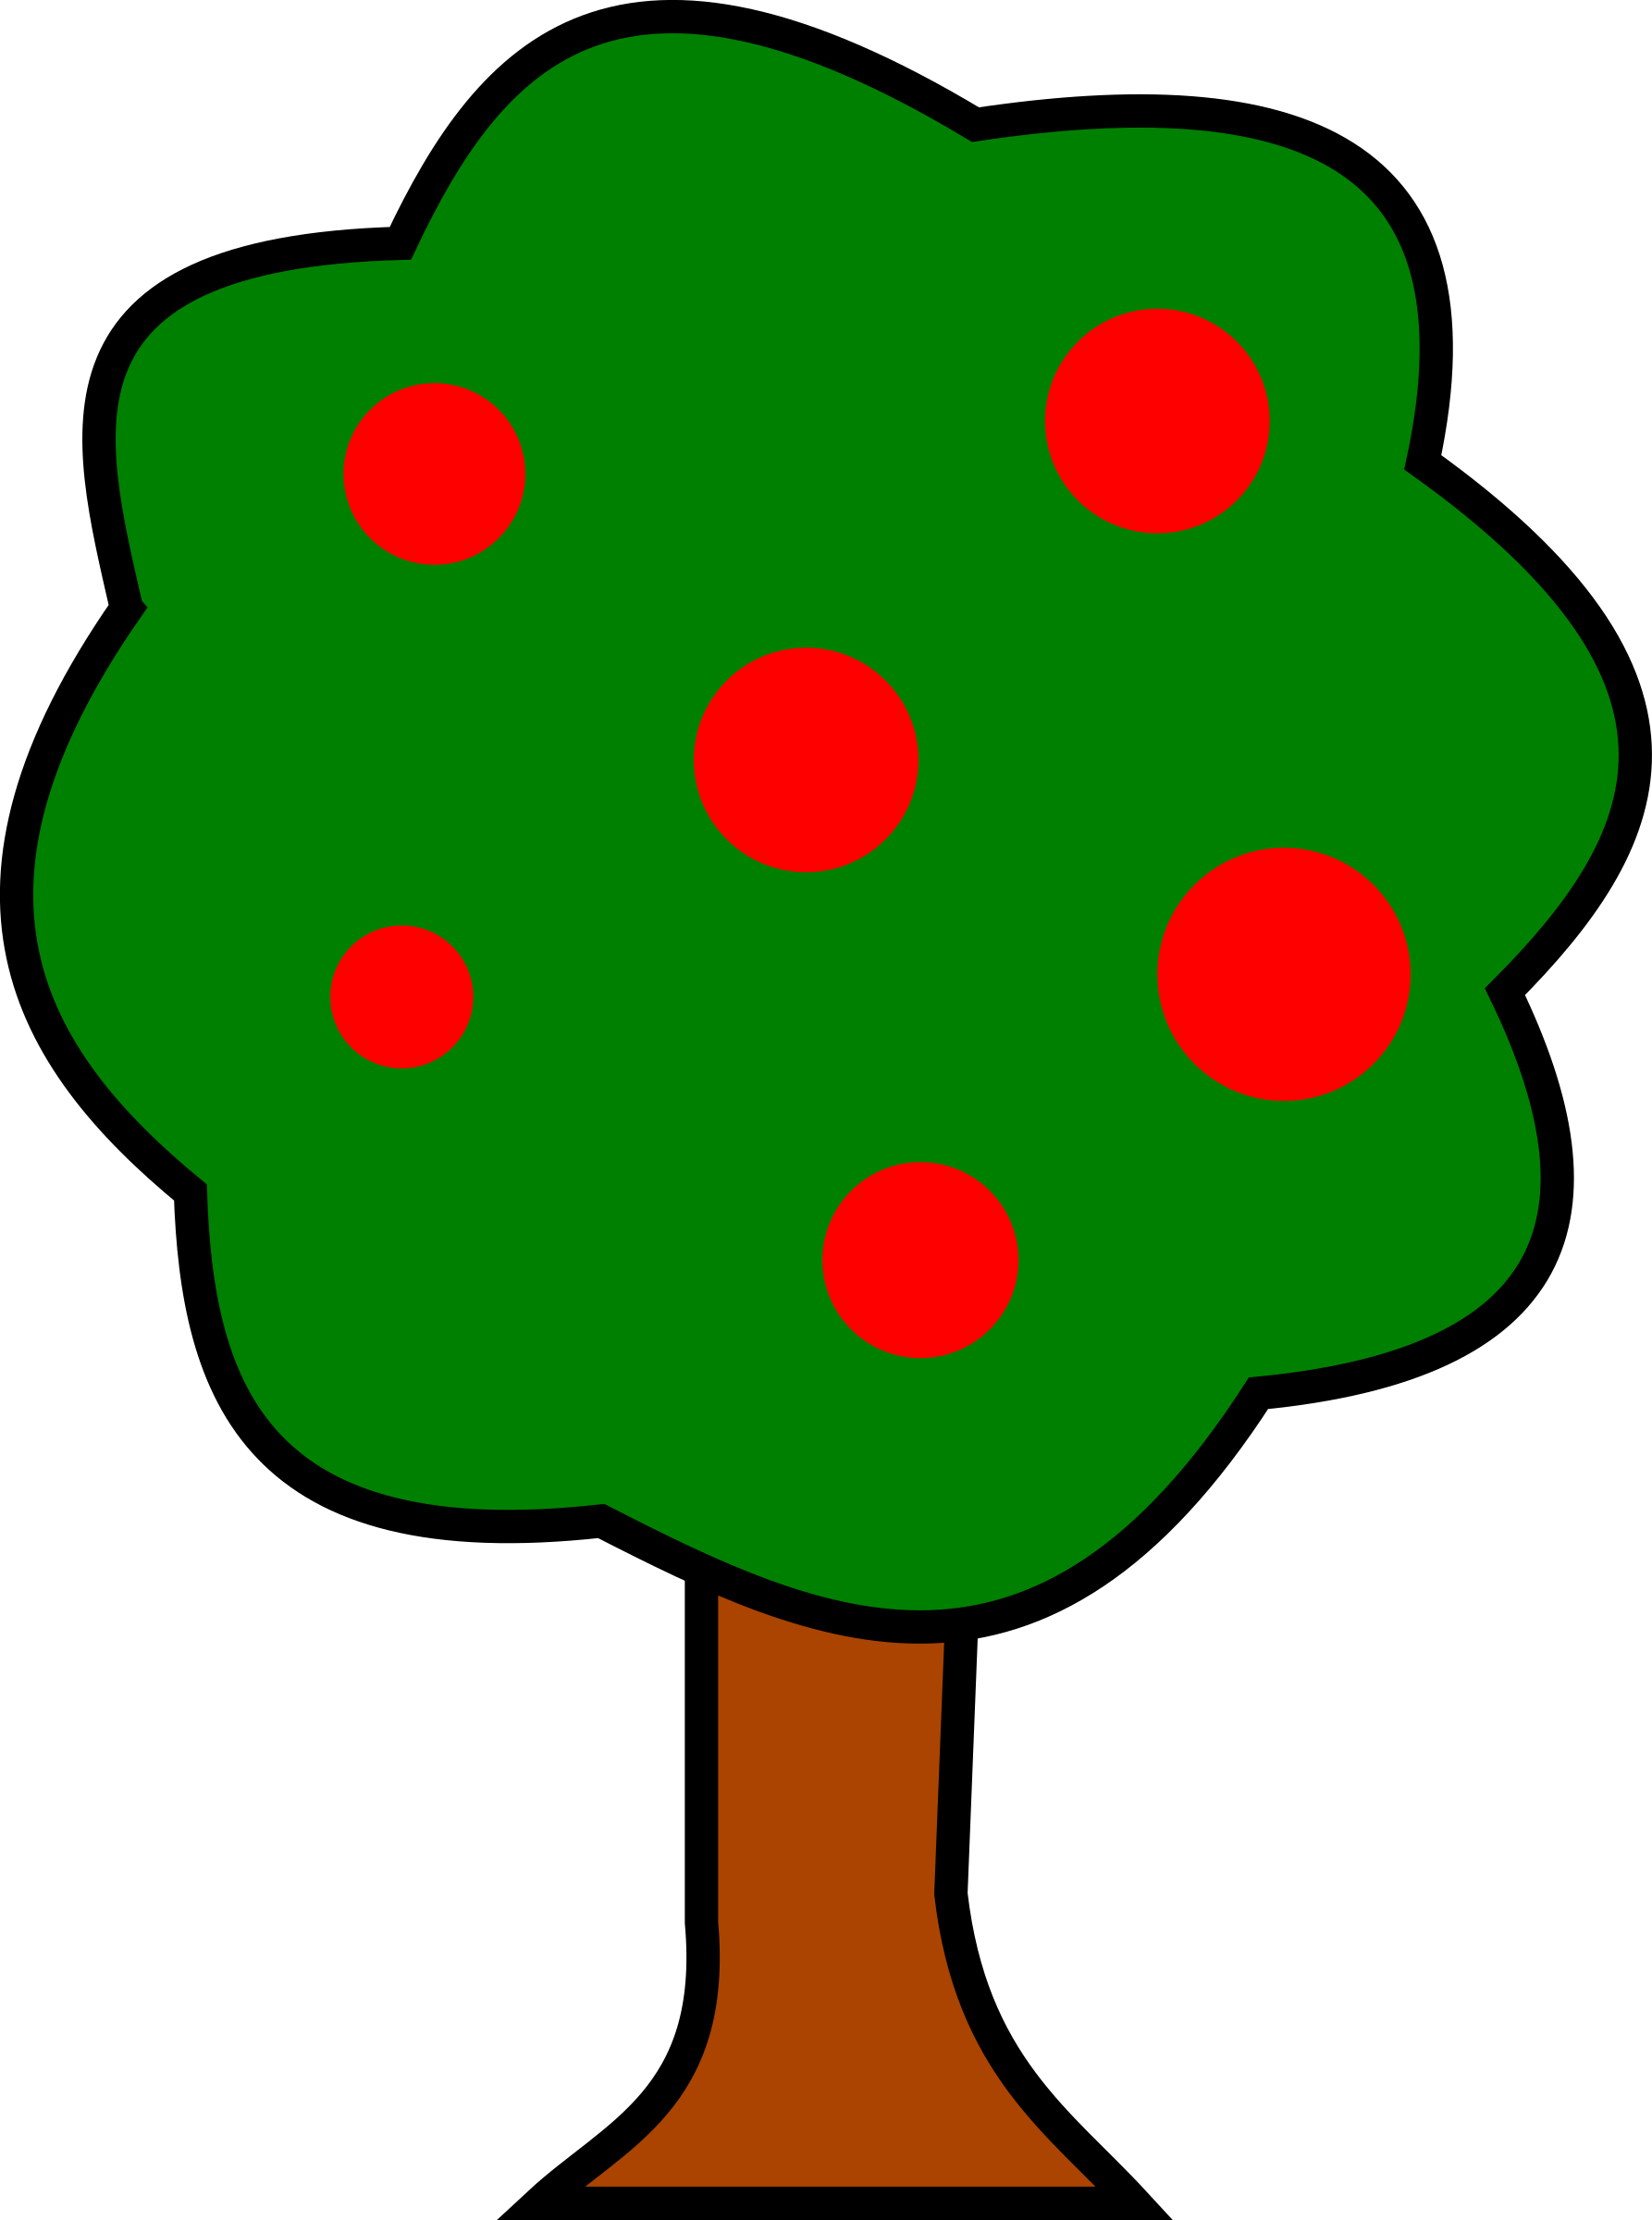 Tree with fruit clipart image freeuse download Mango Tree Clipart at GetDrawings.com | Free for personal use Mango ... image freeuse download